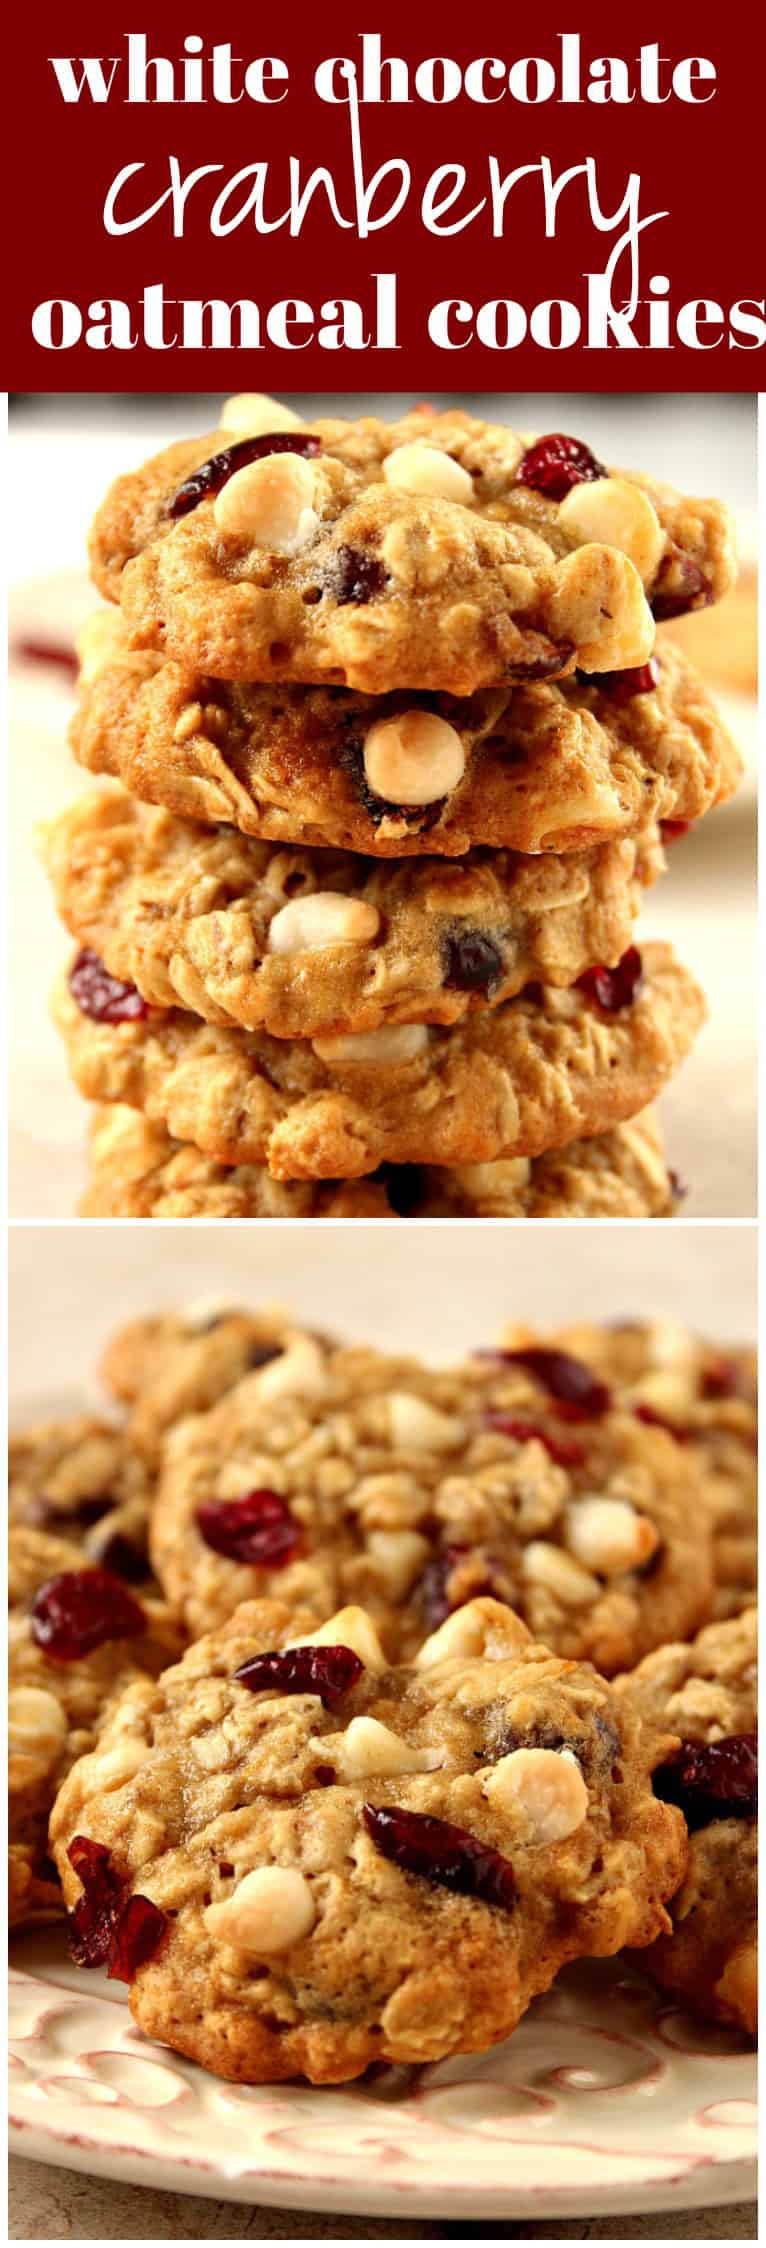 cranberry white chocolate oatmeal cookies long1 Cranberry White Chocolate Oatmeal Cookies Recipe